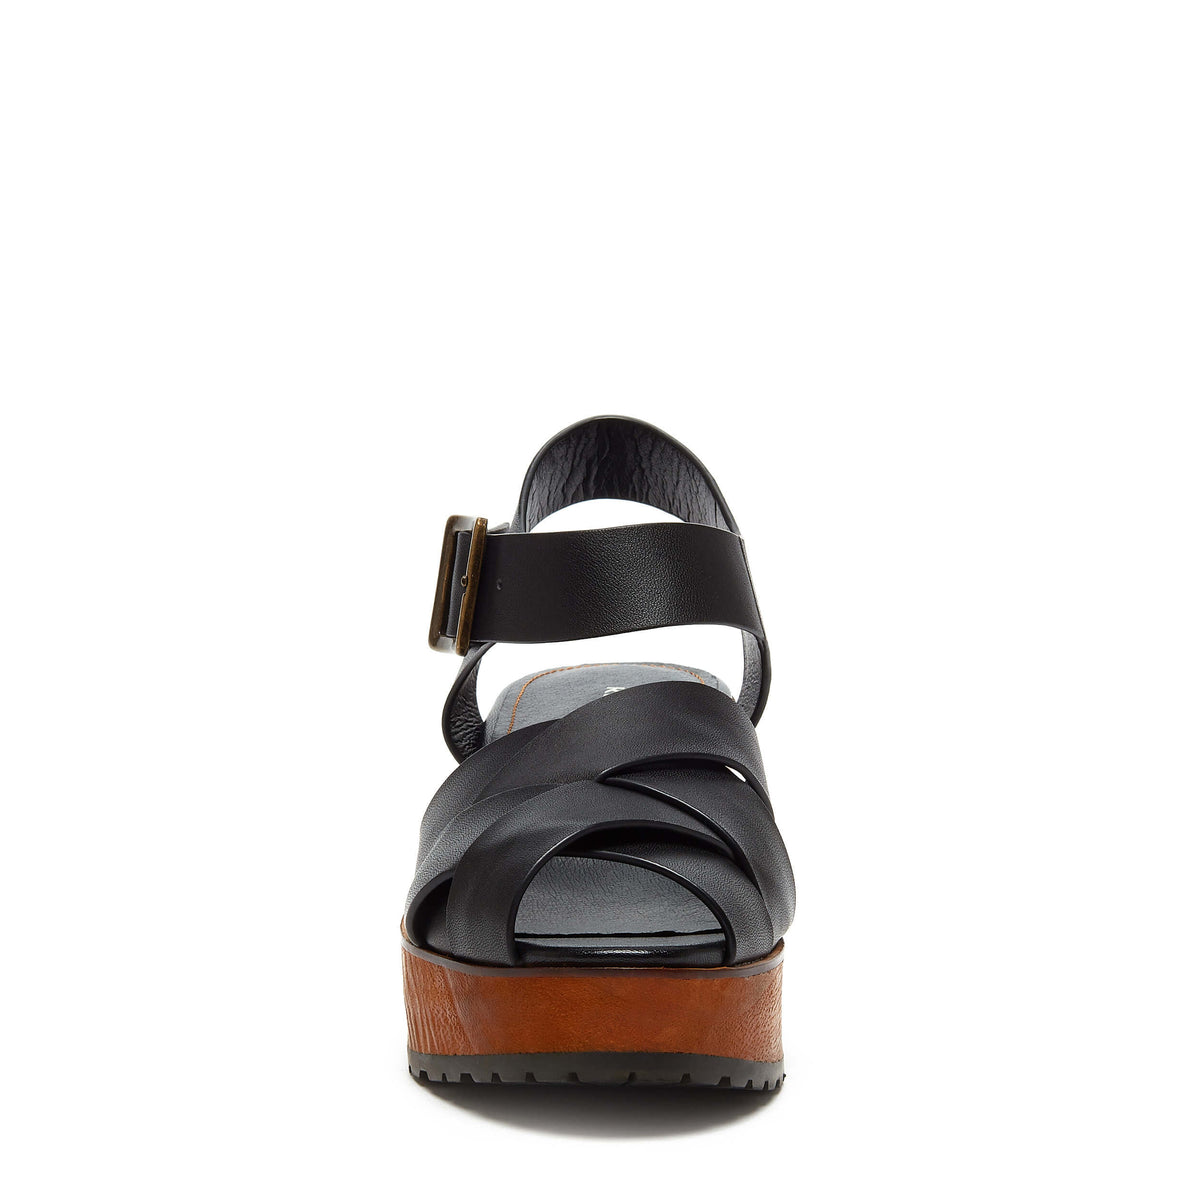 Webster Black Leather Wood Sandal